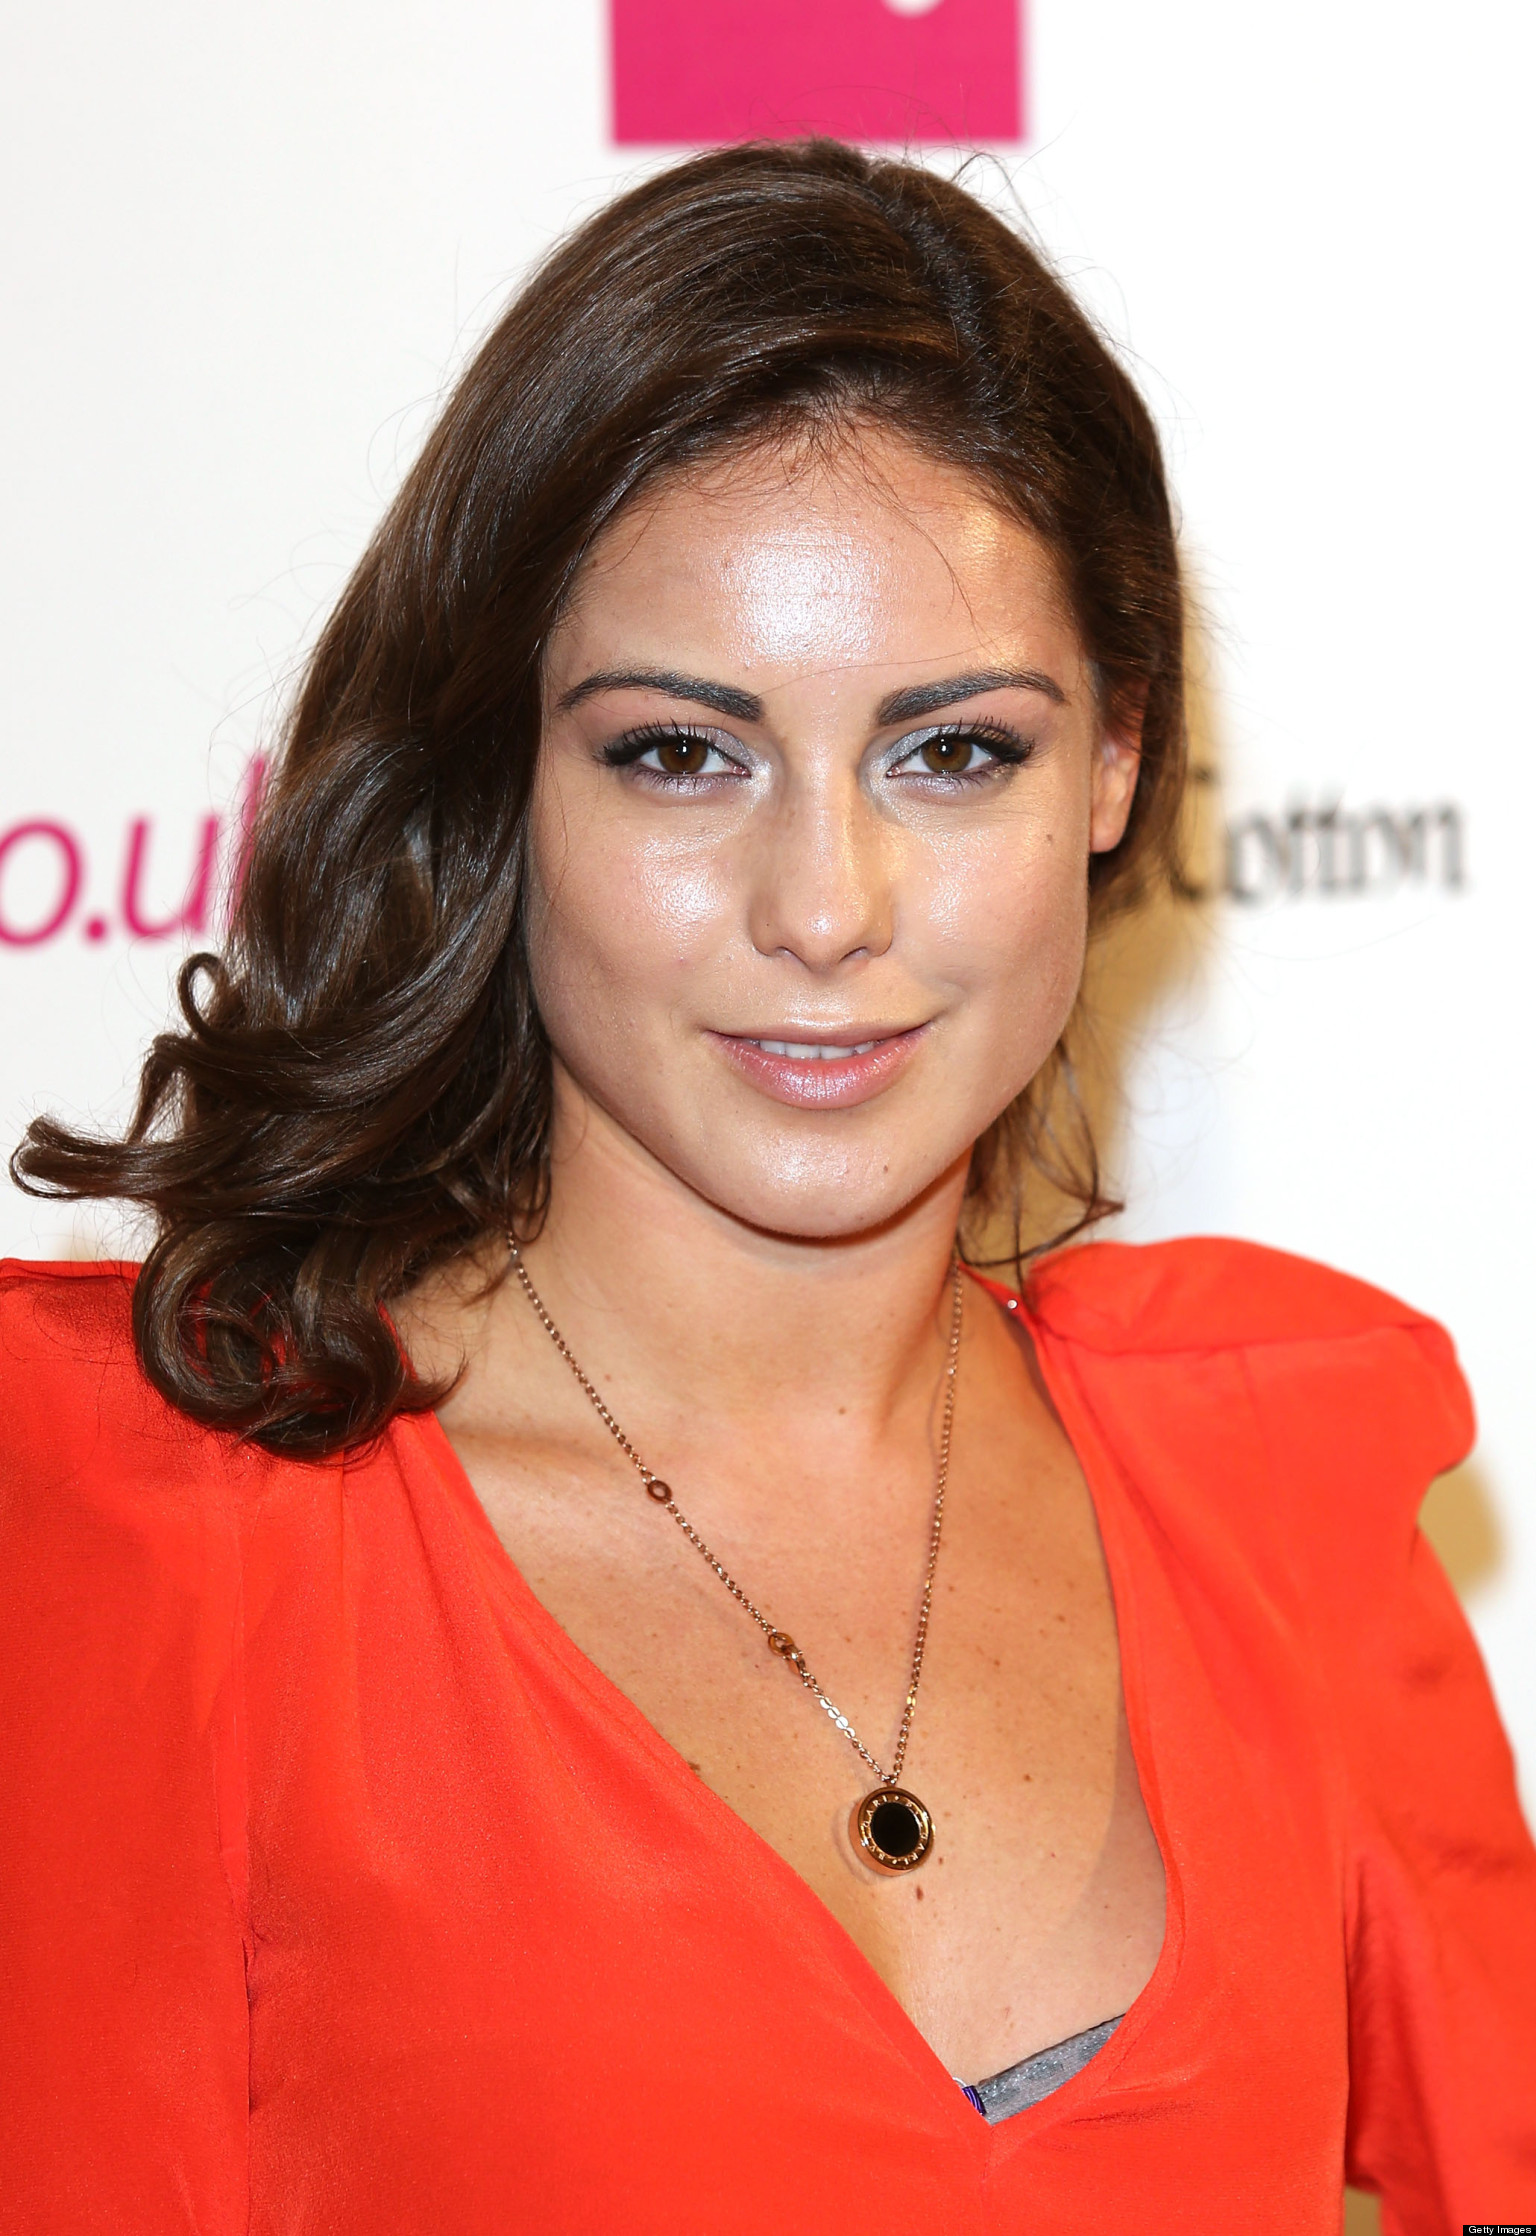 Hacked Louise Thompson nudes (38 photos), Tits, Is a cute, Feet, see through 2006